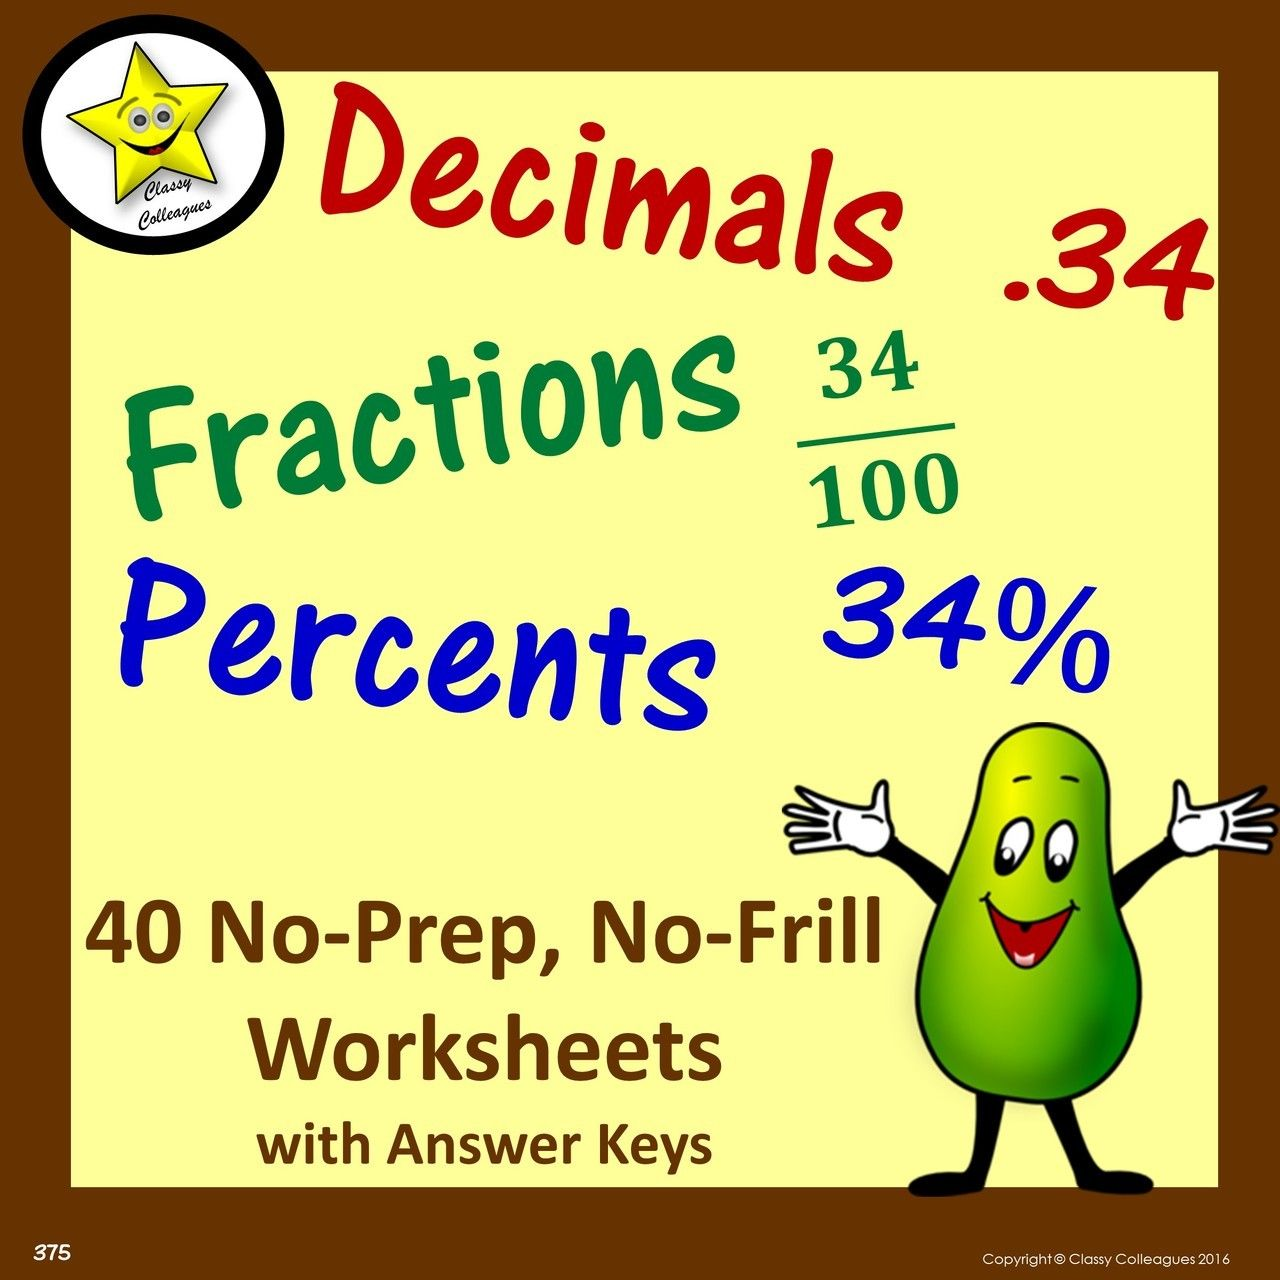 Decimal Fraction Percent Equivalent No Frill Worksheets